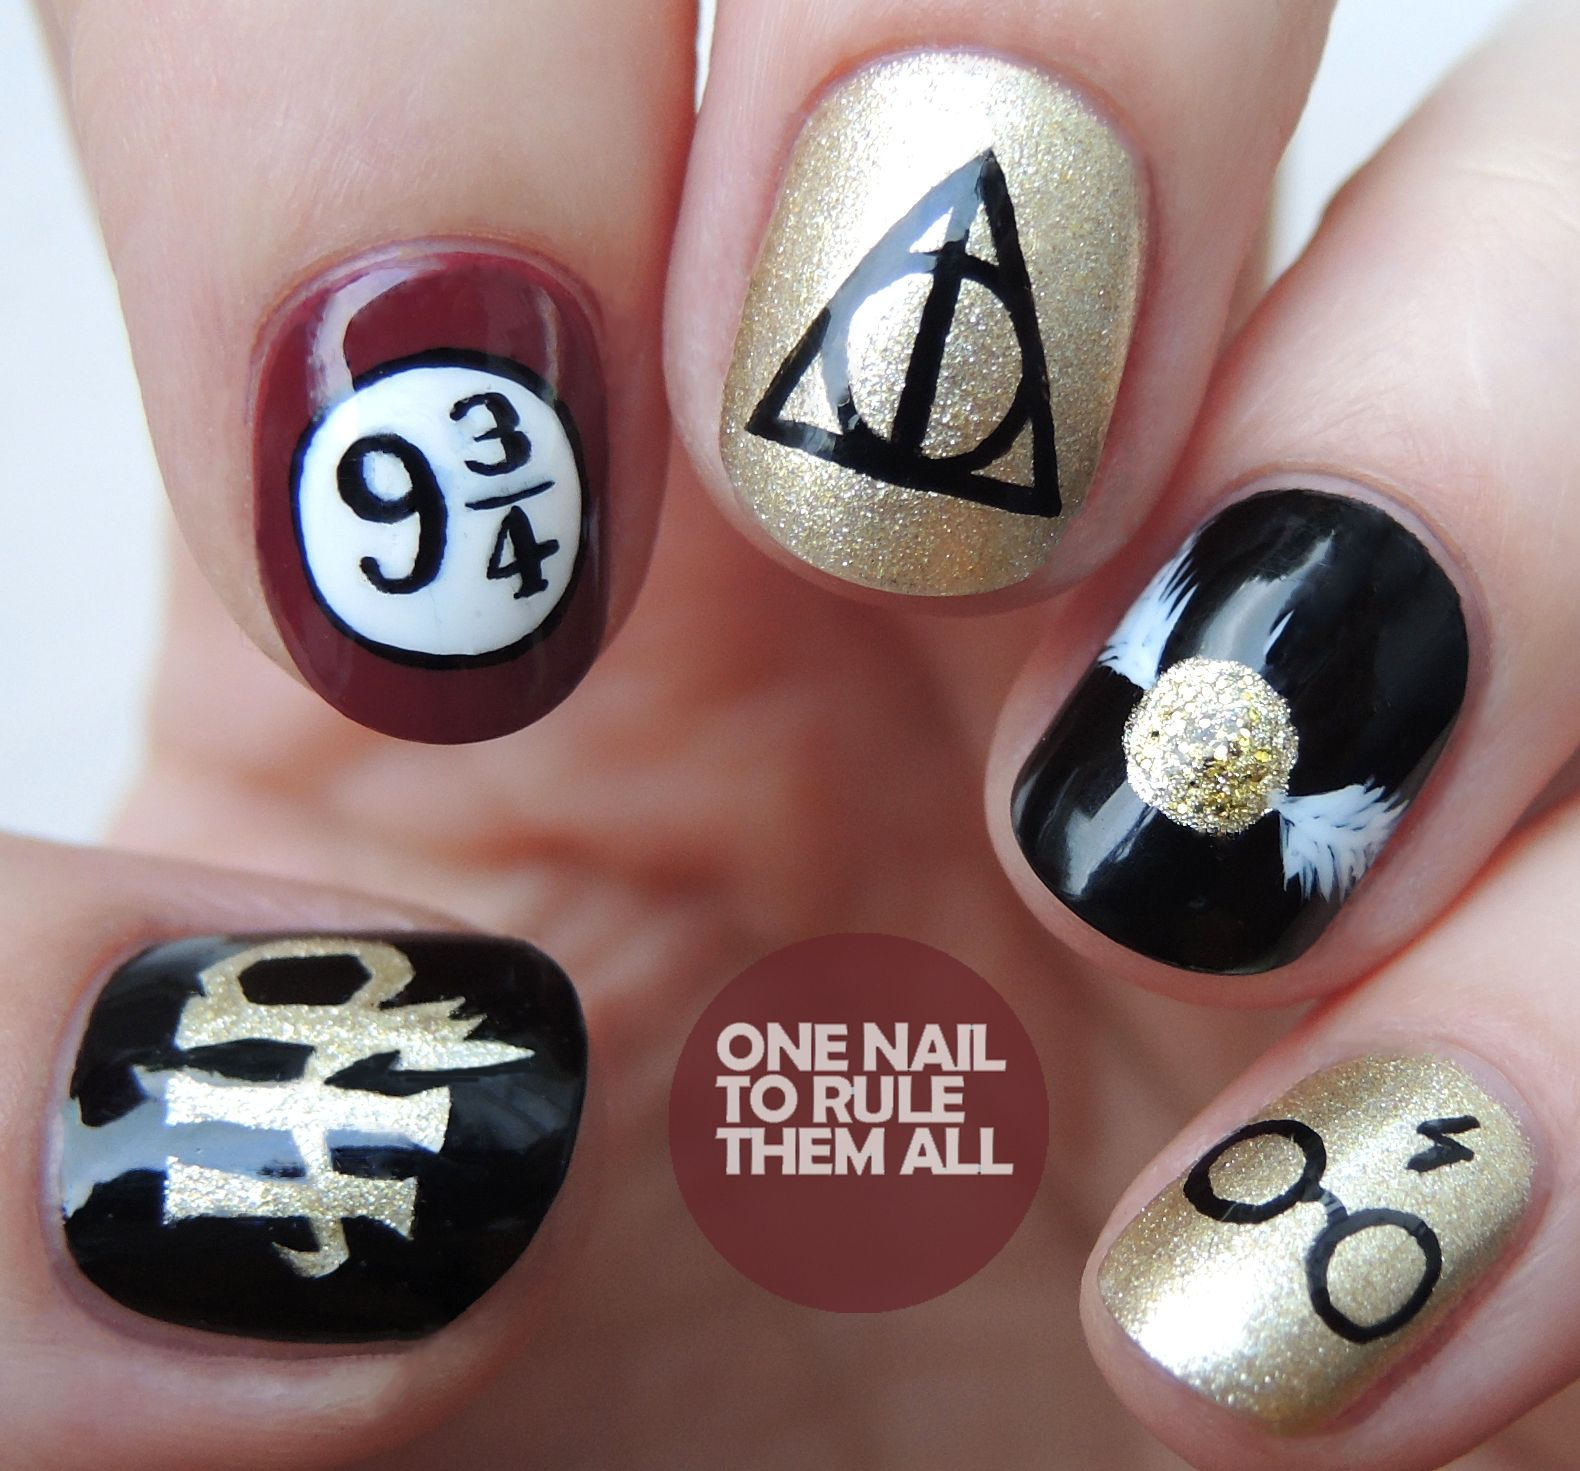 Award Winning British Nail Art Blog Nails Pinterest Nail Art